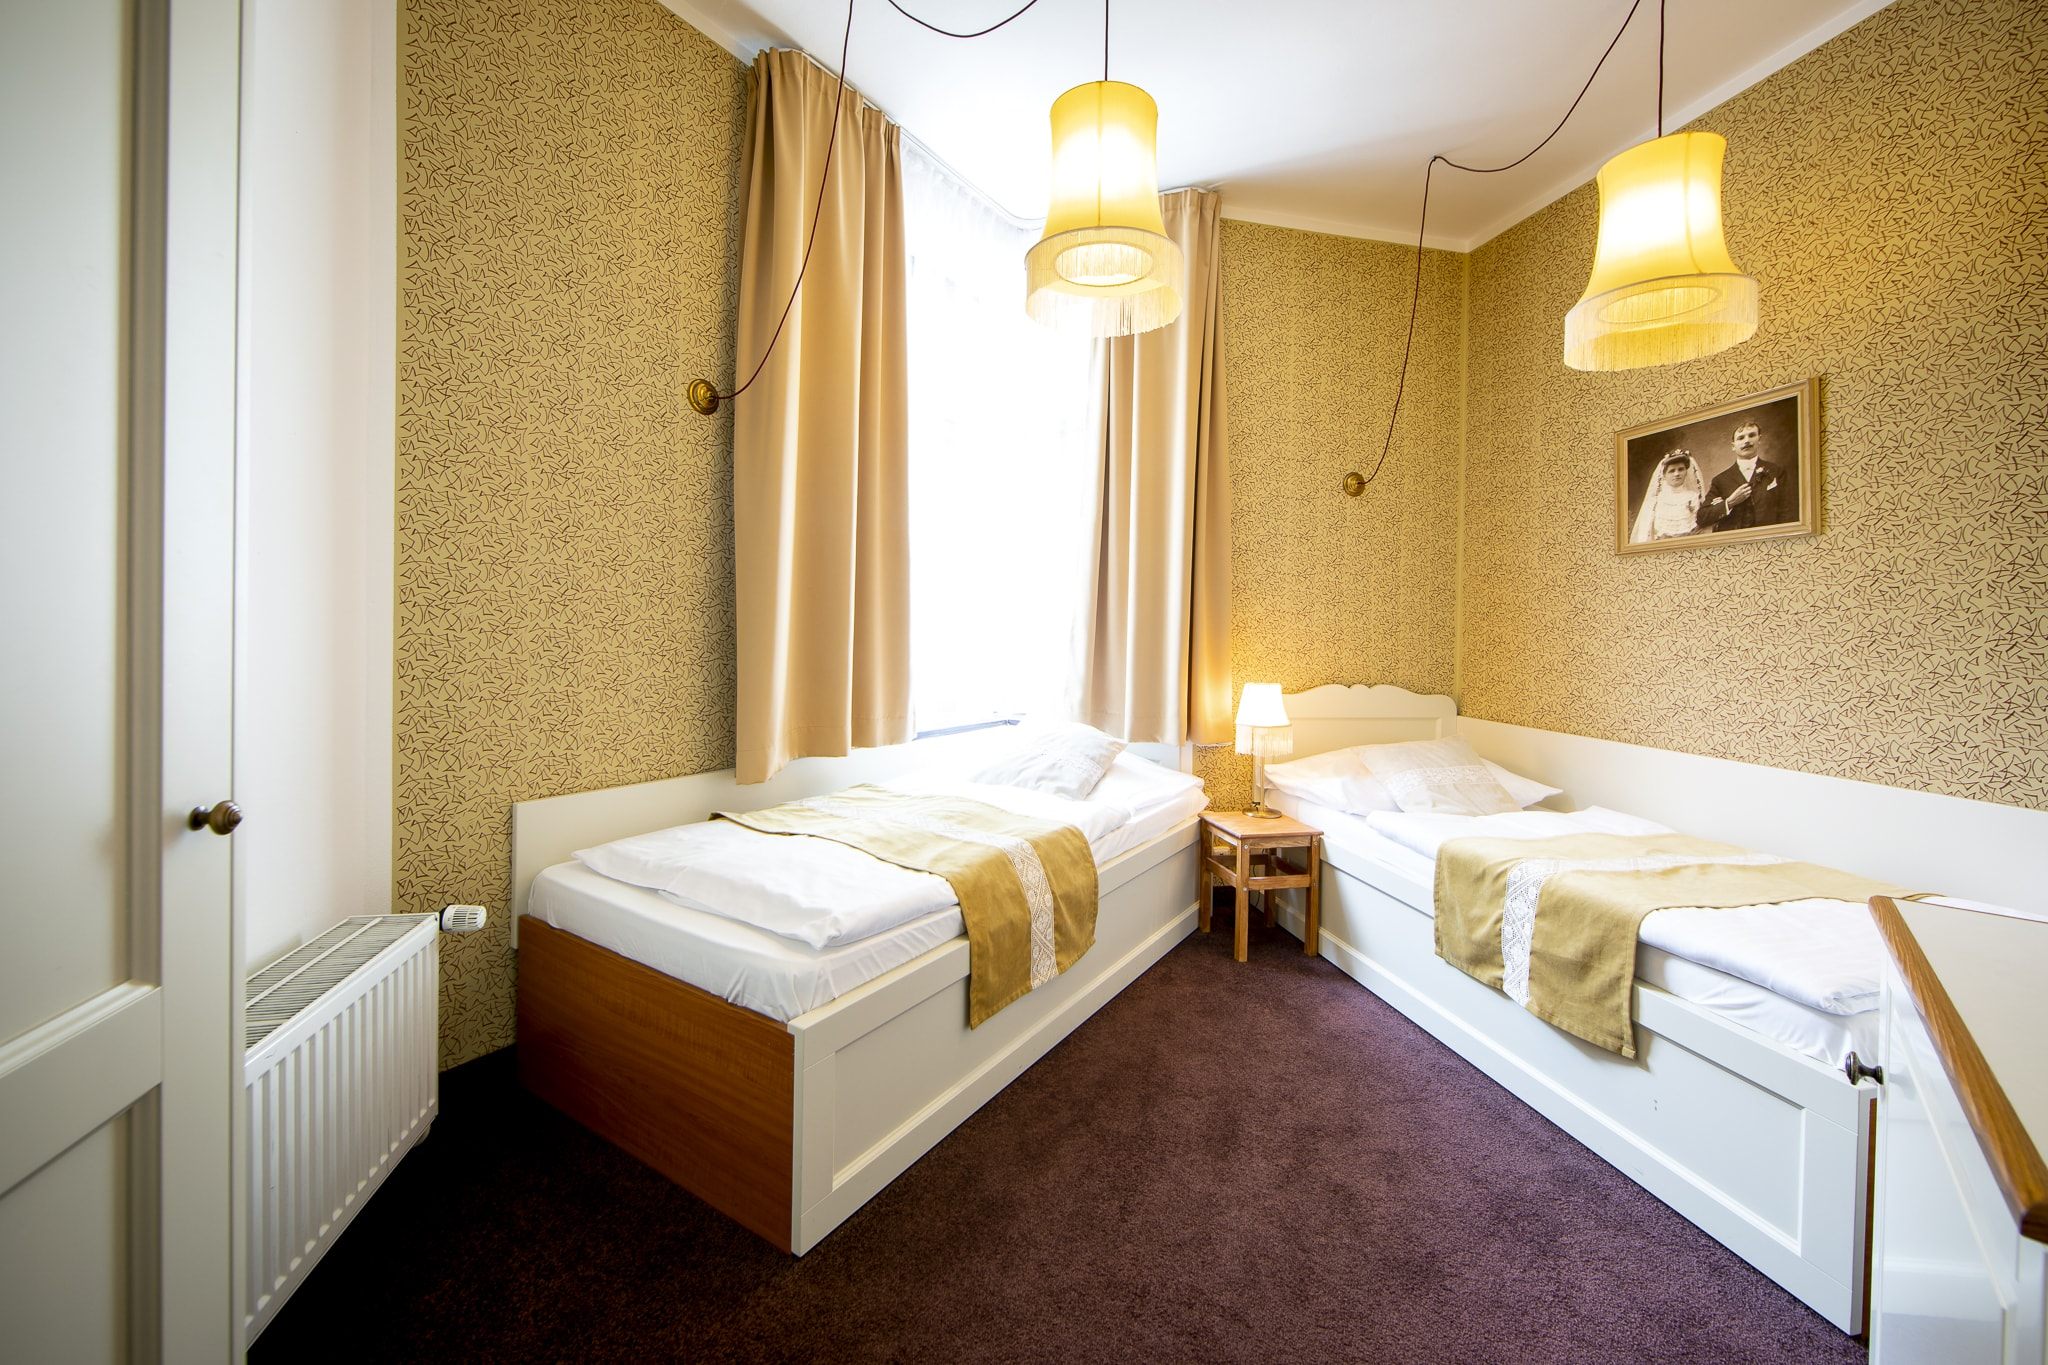 Amadeus Hotel bedroom with two single beds